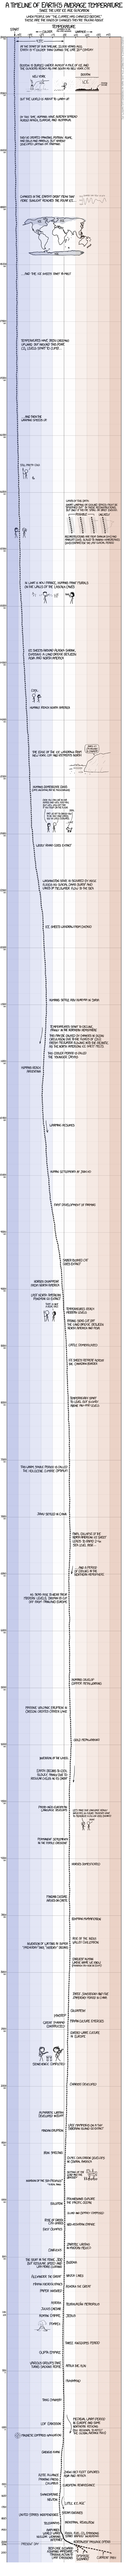 earth_temperature_timeline1